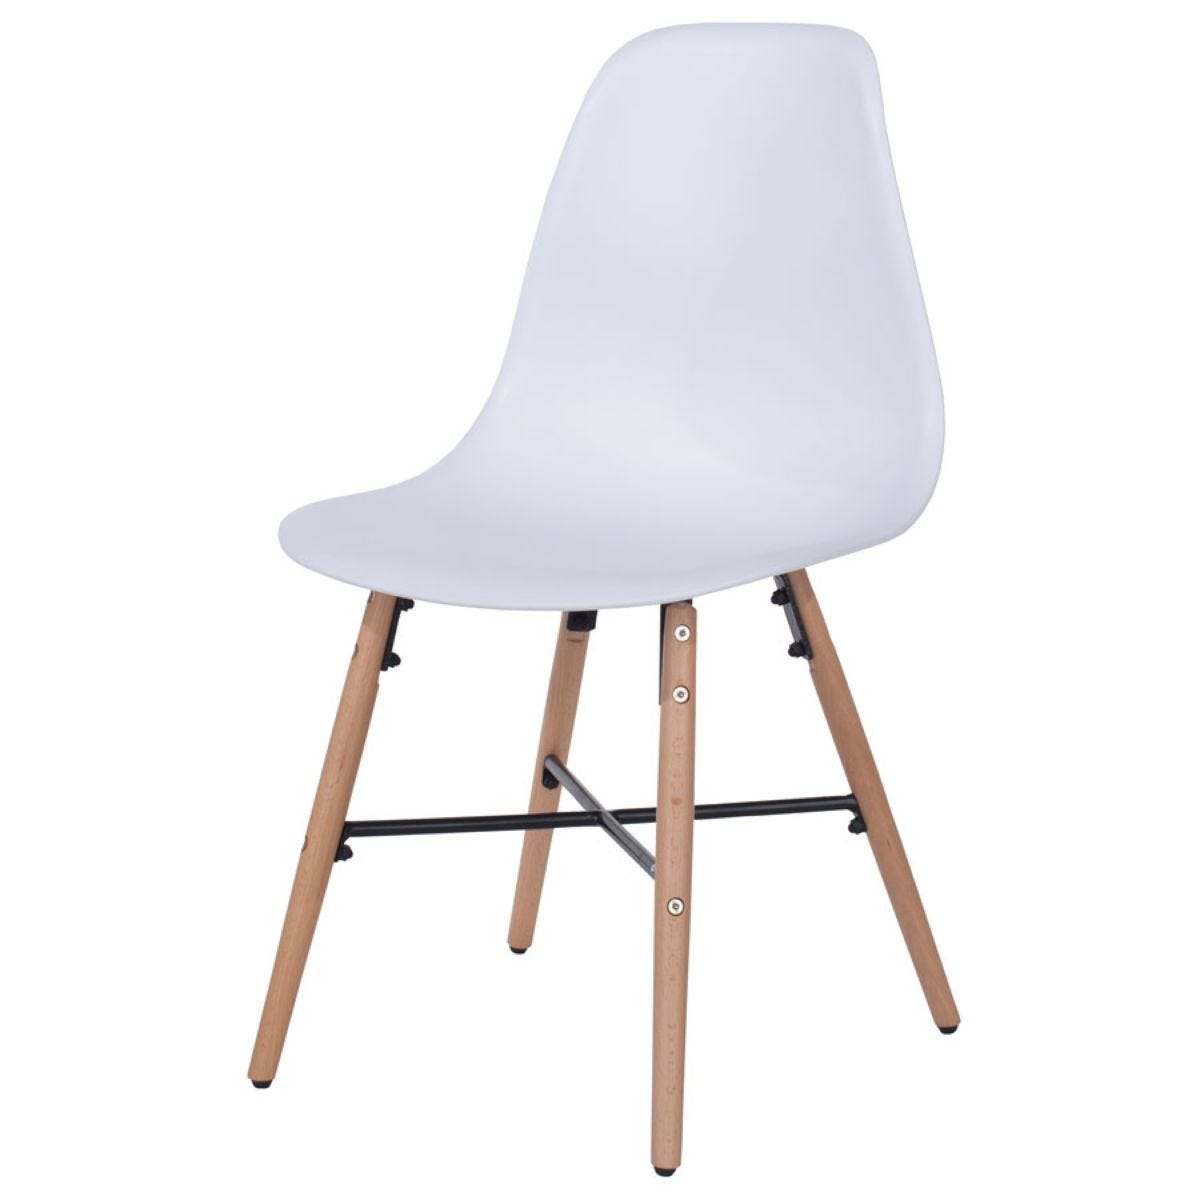 Roloku Pair of Chairs with Metal Cross Rails - White